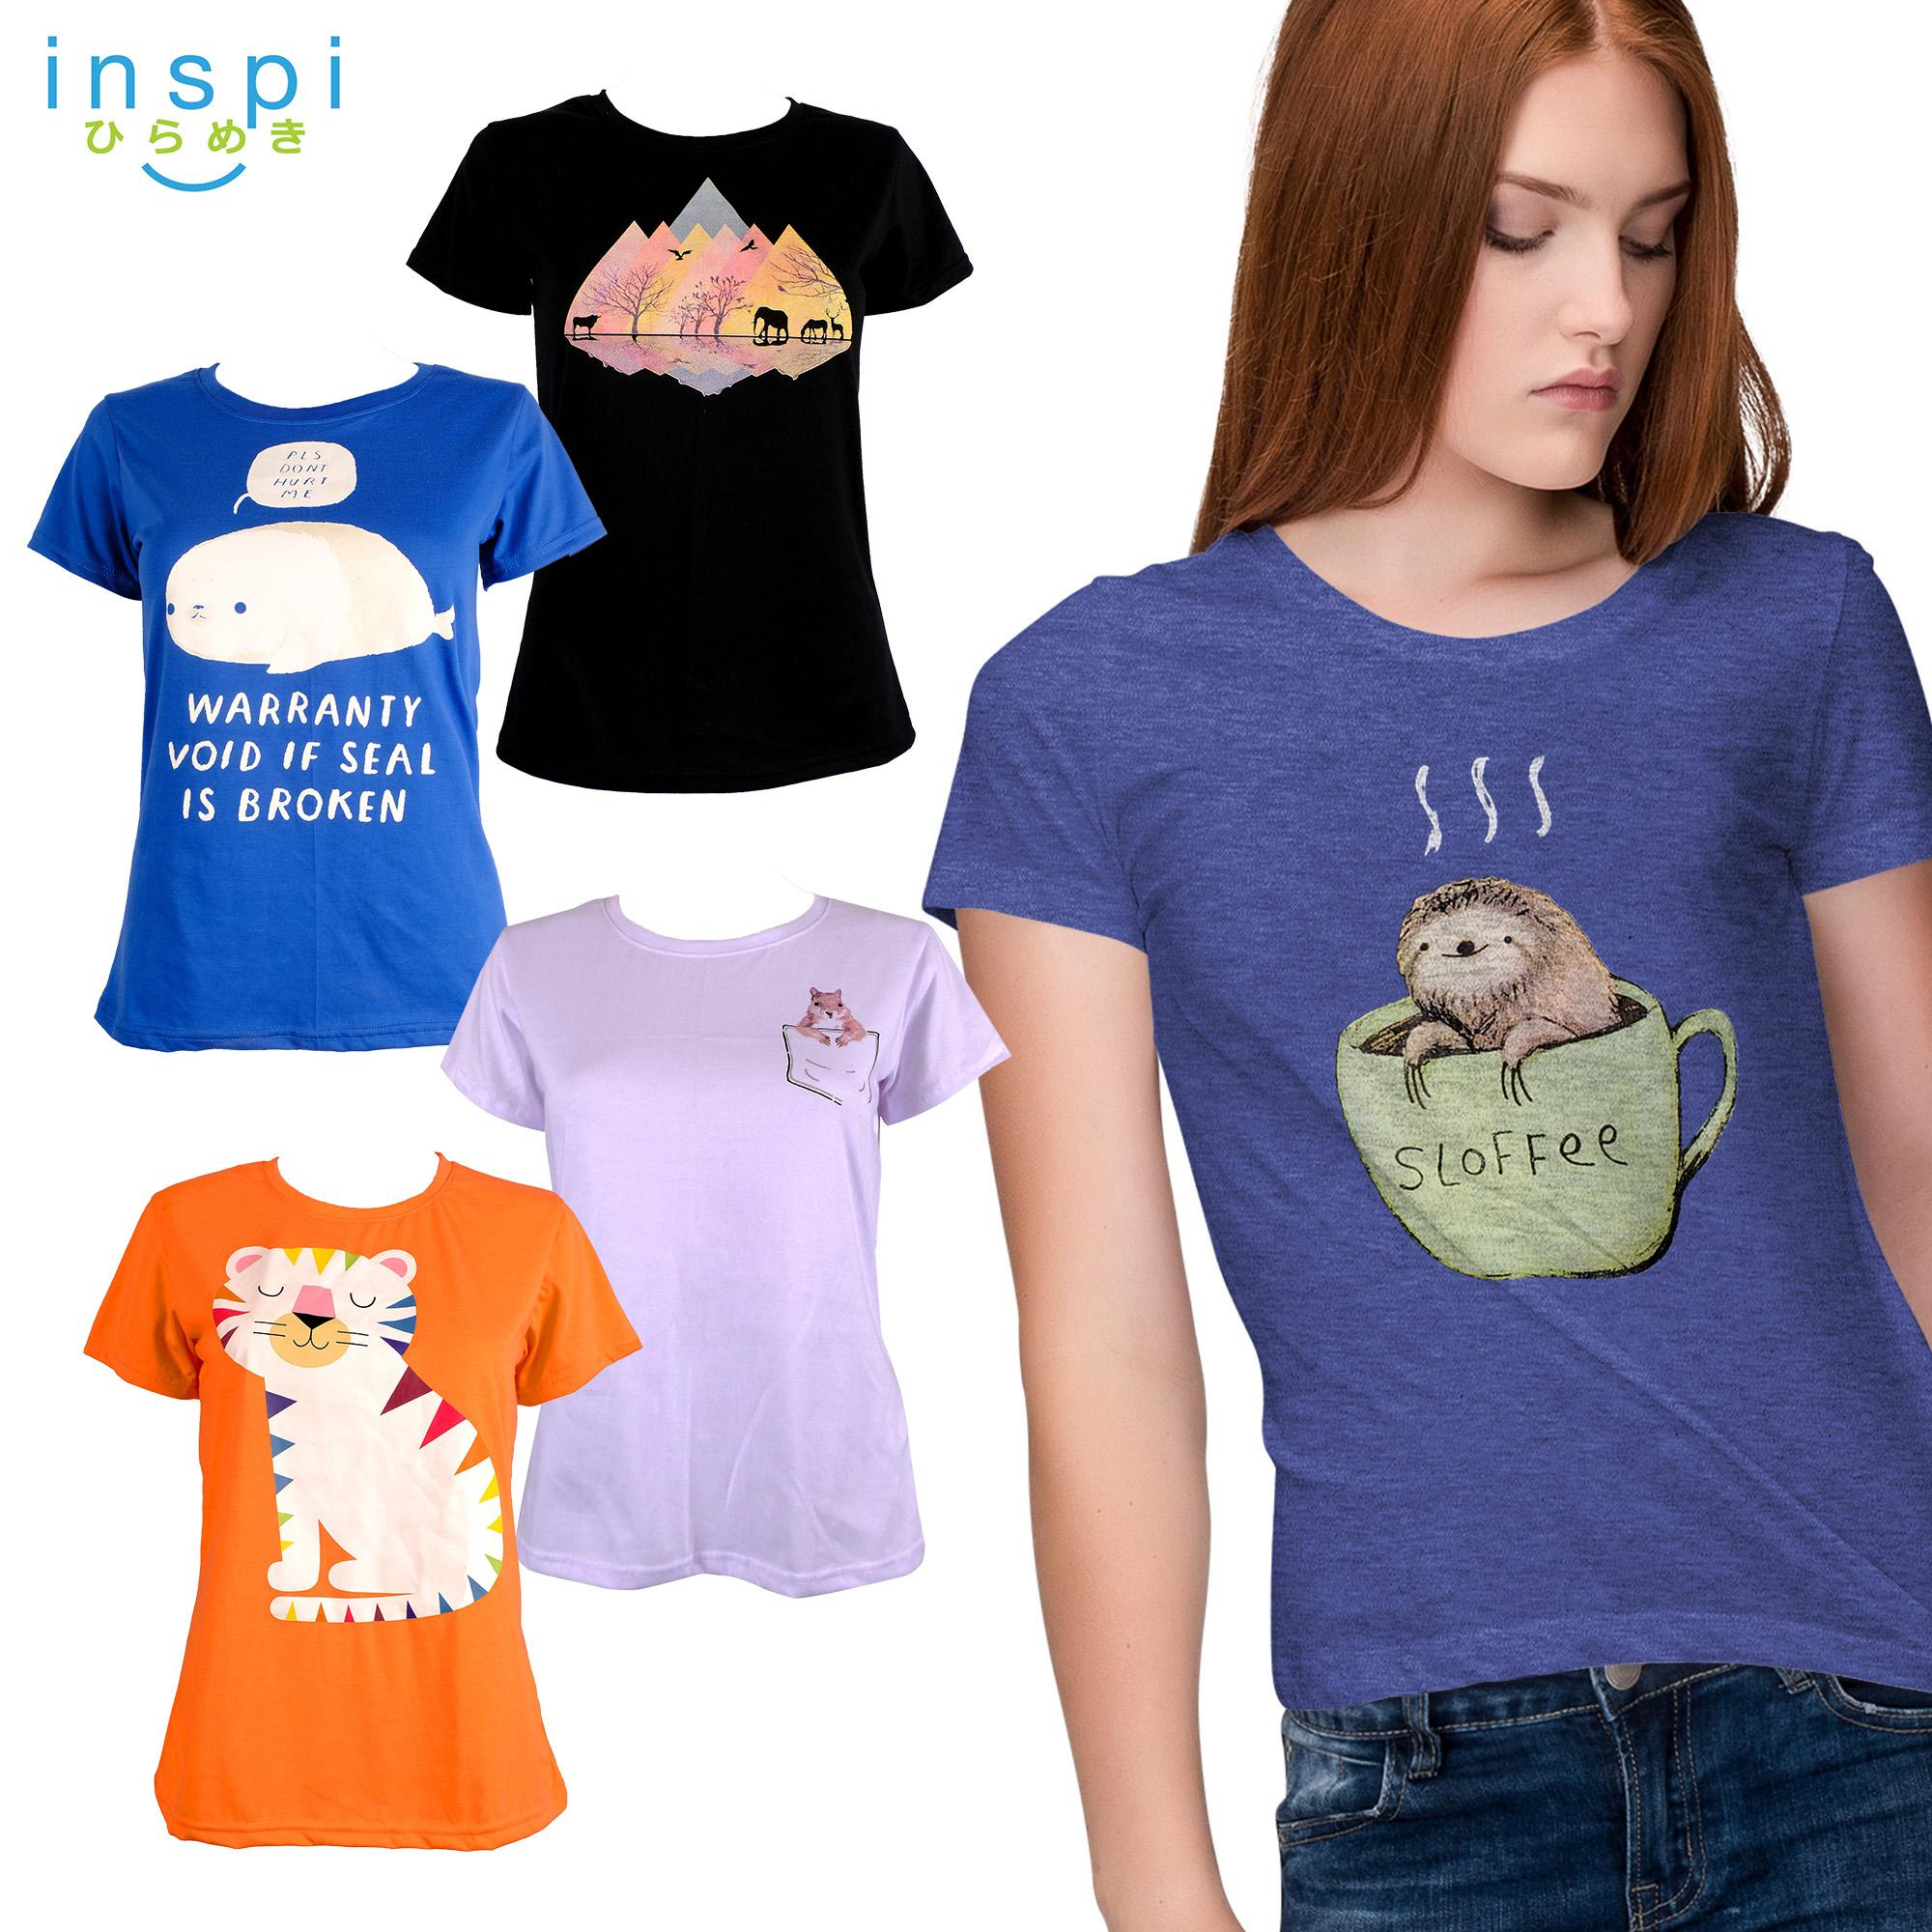 420df6c781ea27 1679342 items found in Clothing. INSPI Tees Ladies Pet Collection tshirt  printed graphic tee Ladies t shirt shirts women tshirts for